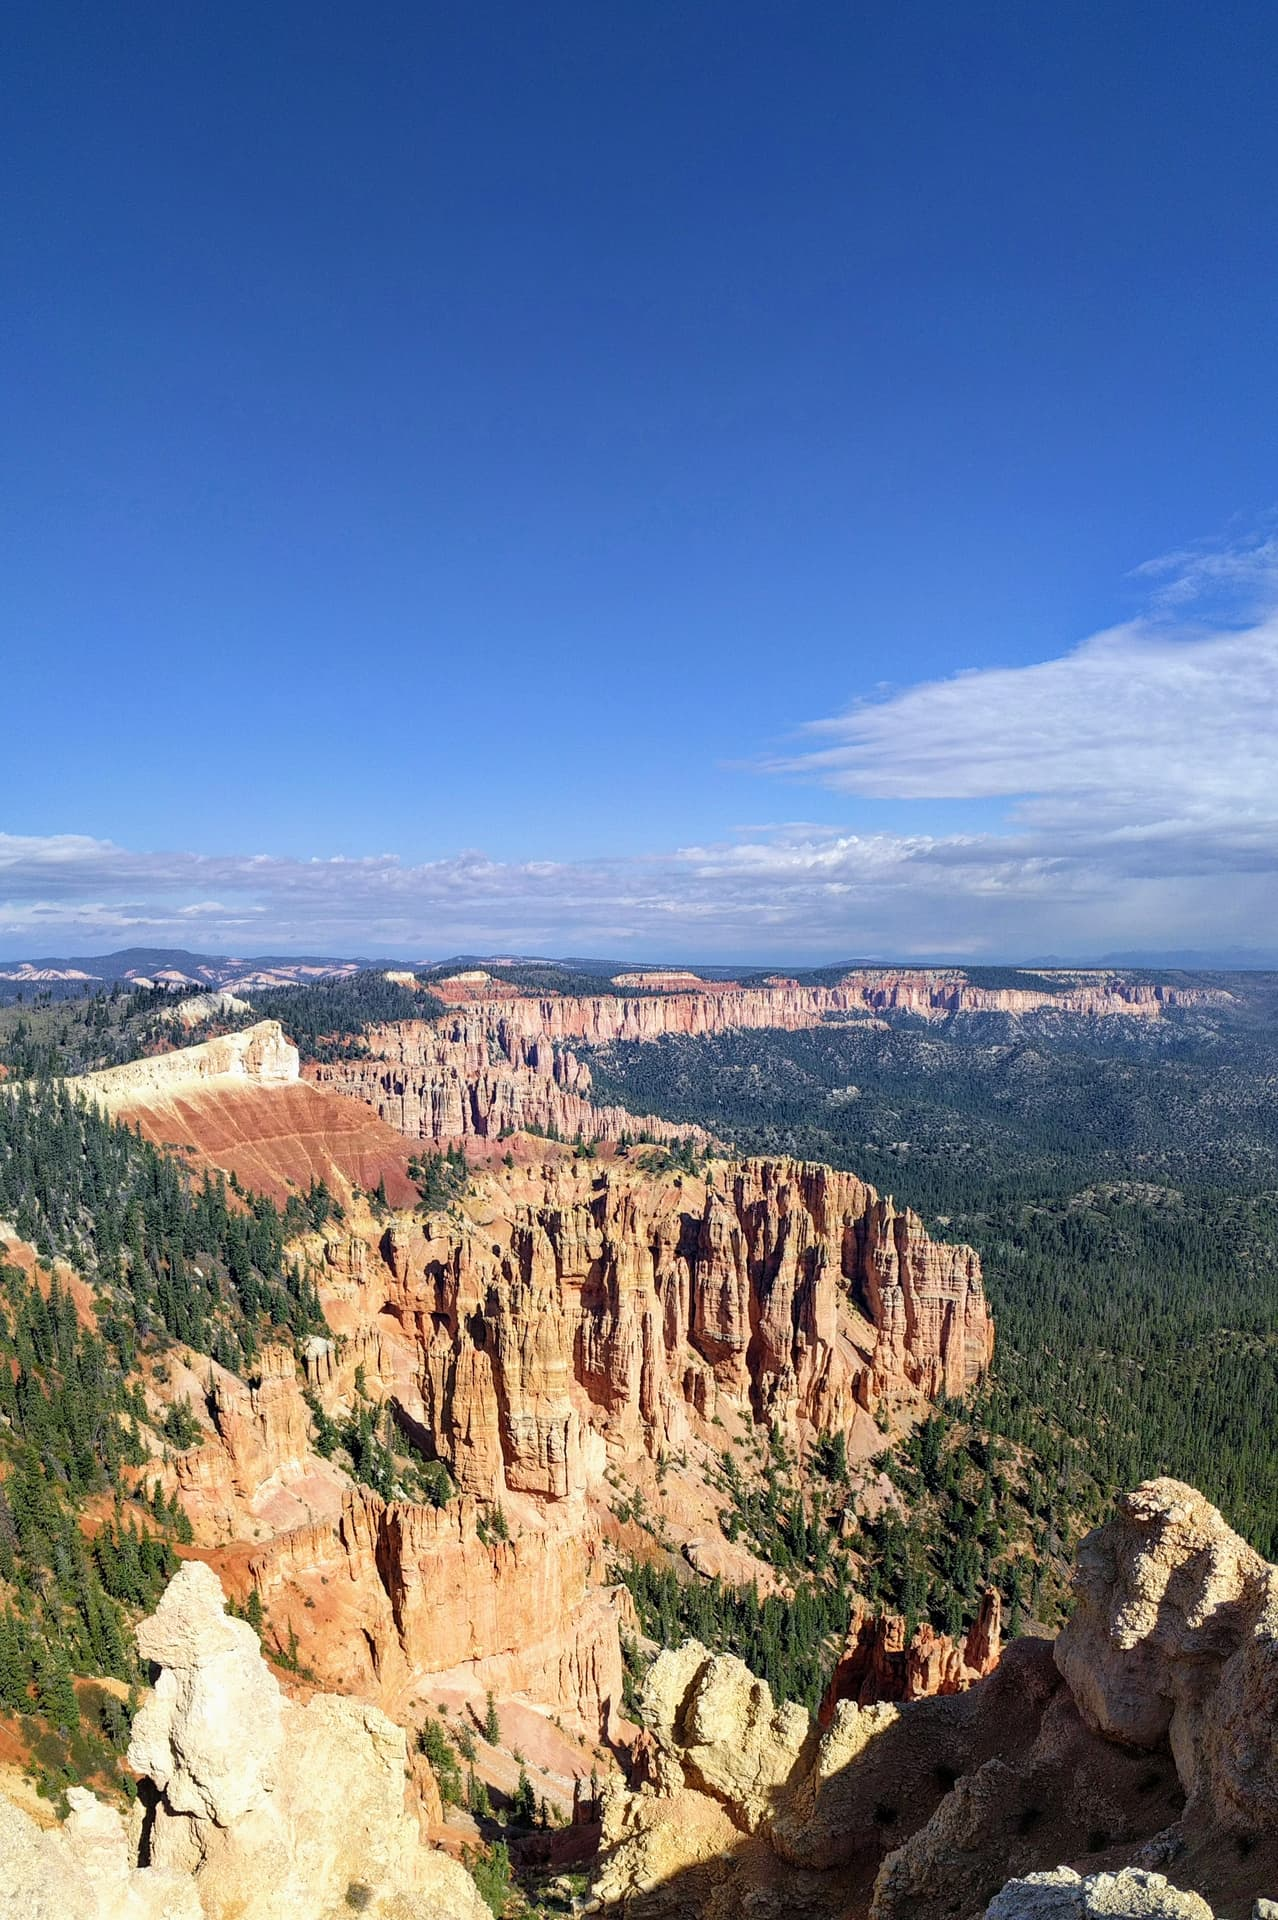 The undulating South Wall of Bryce Canyon. Red and white pillars of soft rock cluster together, eventually becoming the rim of the Canyon. The pillars stop abruptly, and are immediately replaced by a pine forest.